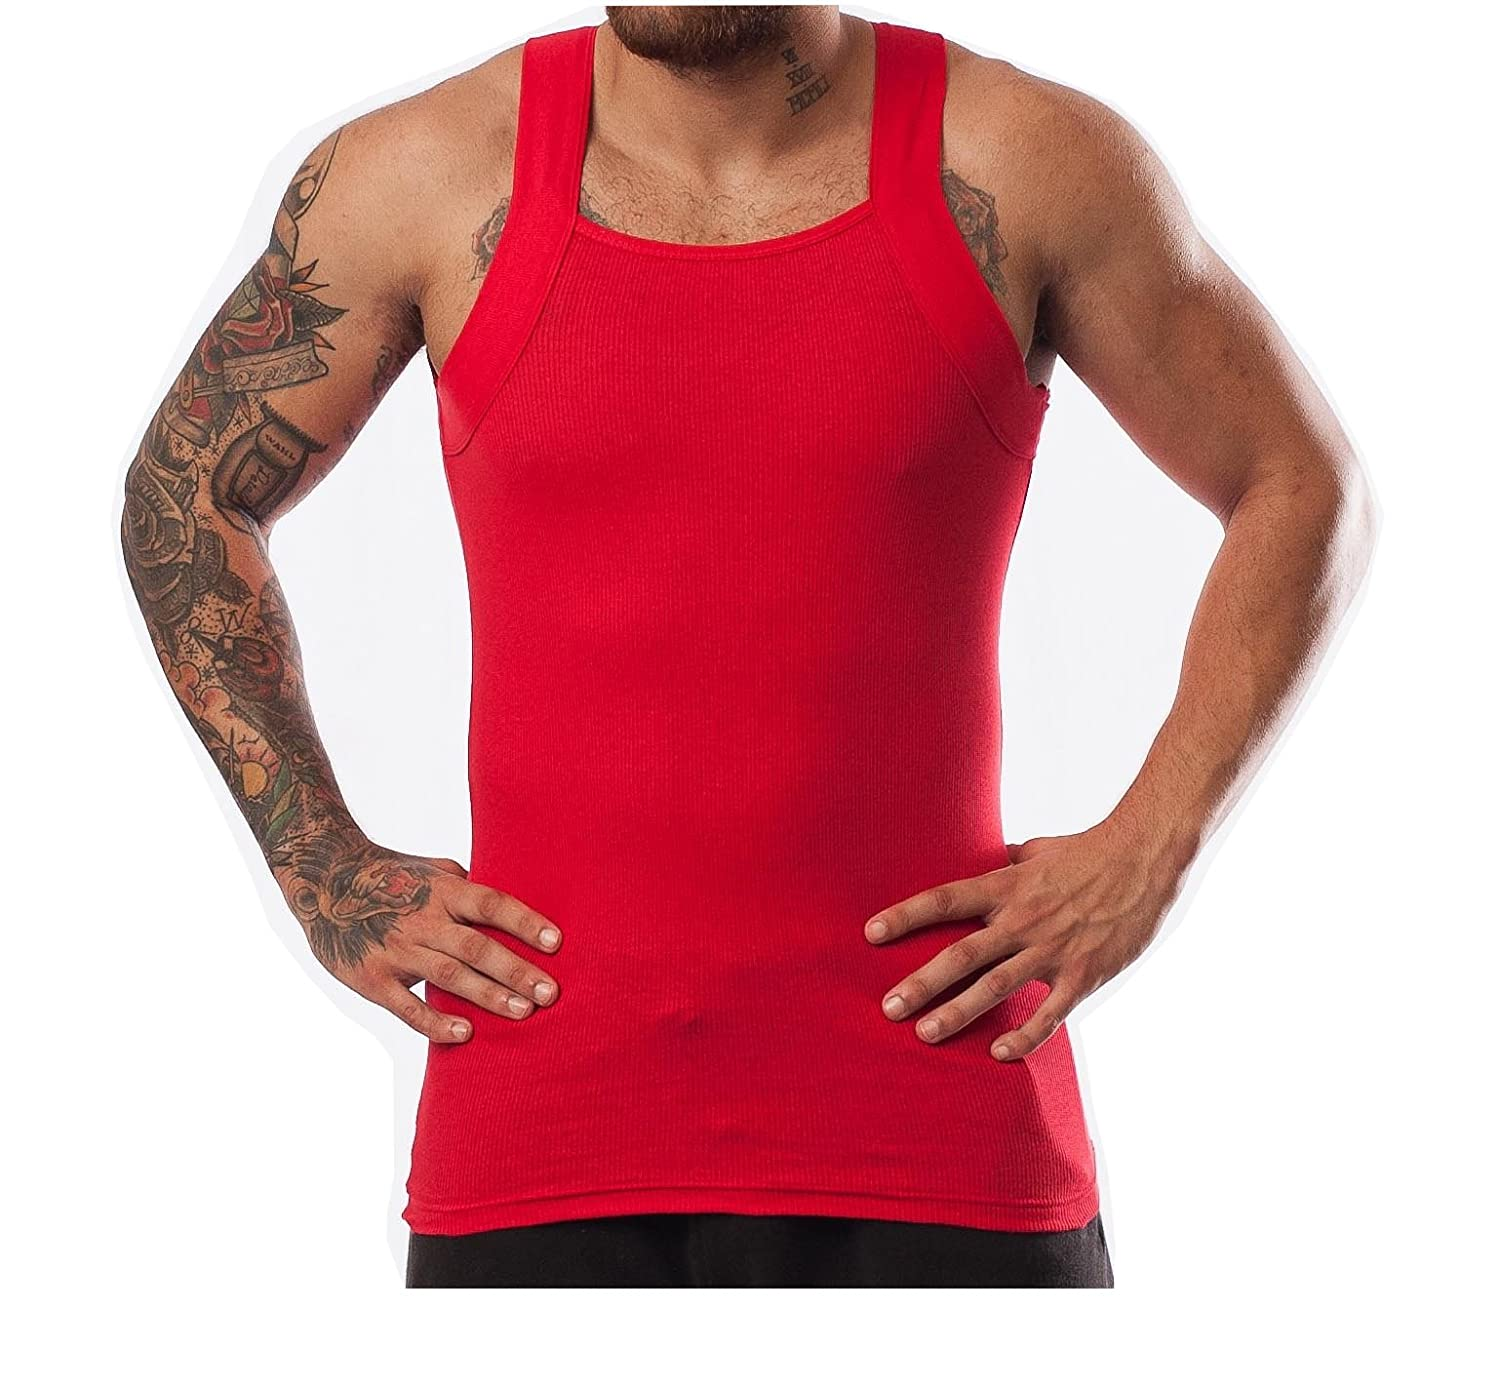 77bf7540e6018c Different Touch Men s G-unit Style Tank Tops Square Cut Muscle Rib A-Shirts